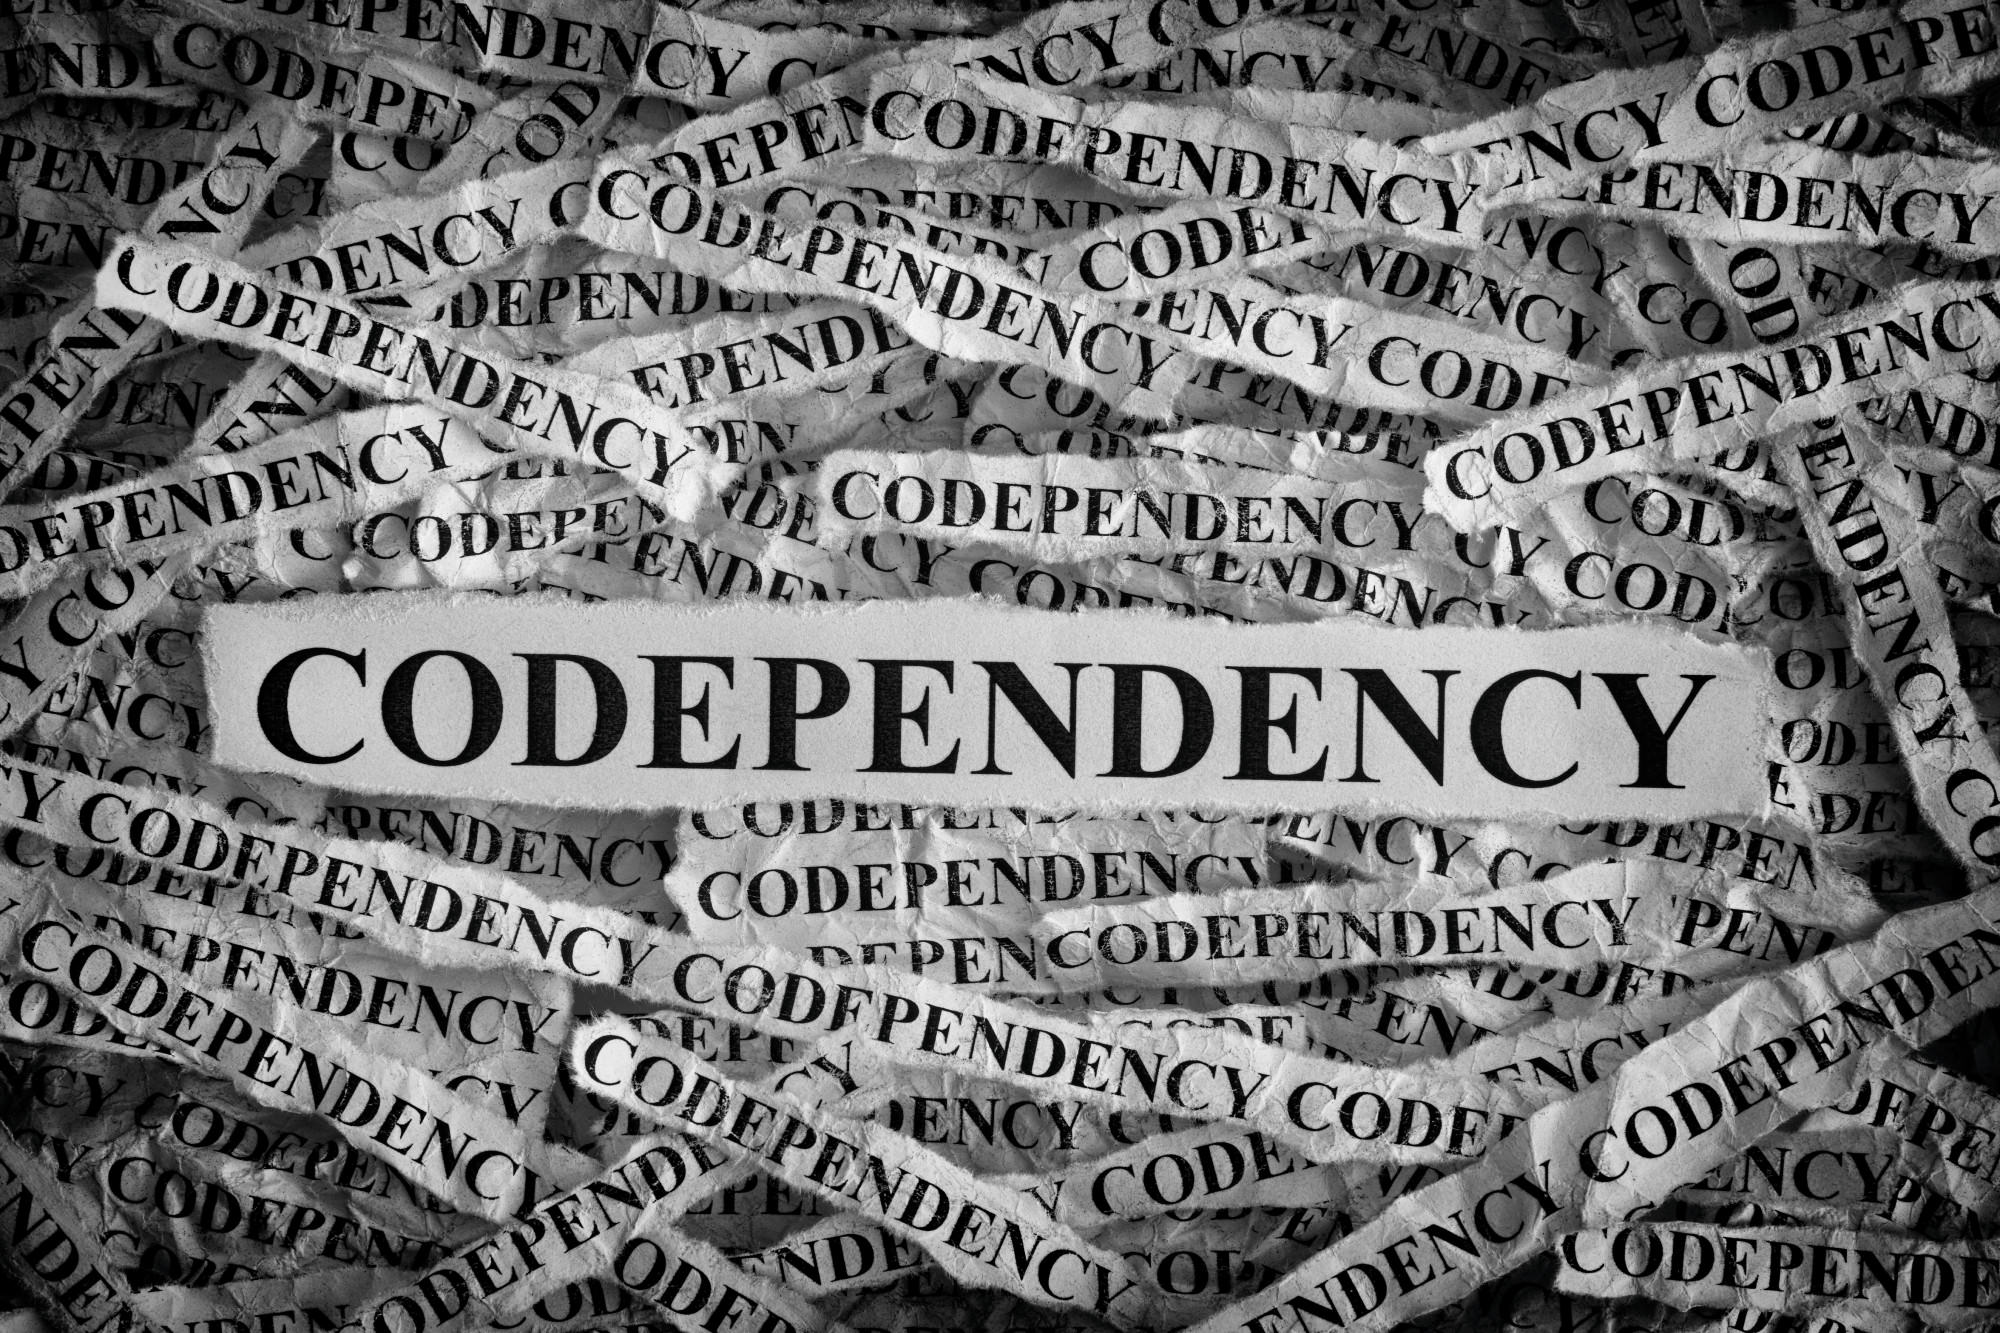 codependency and addiction